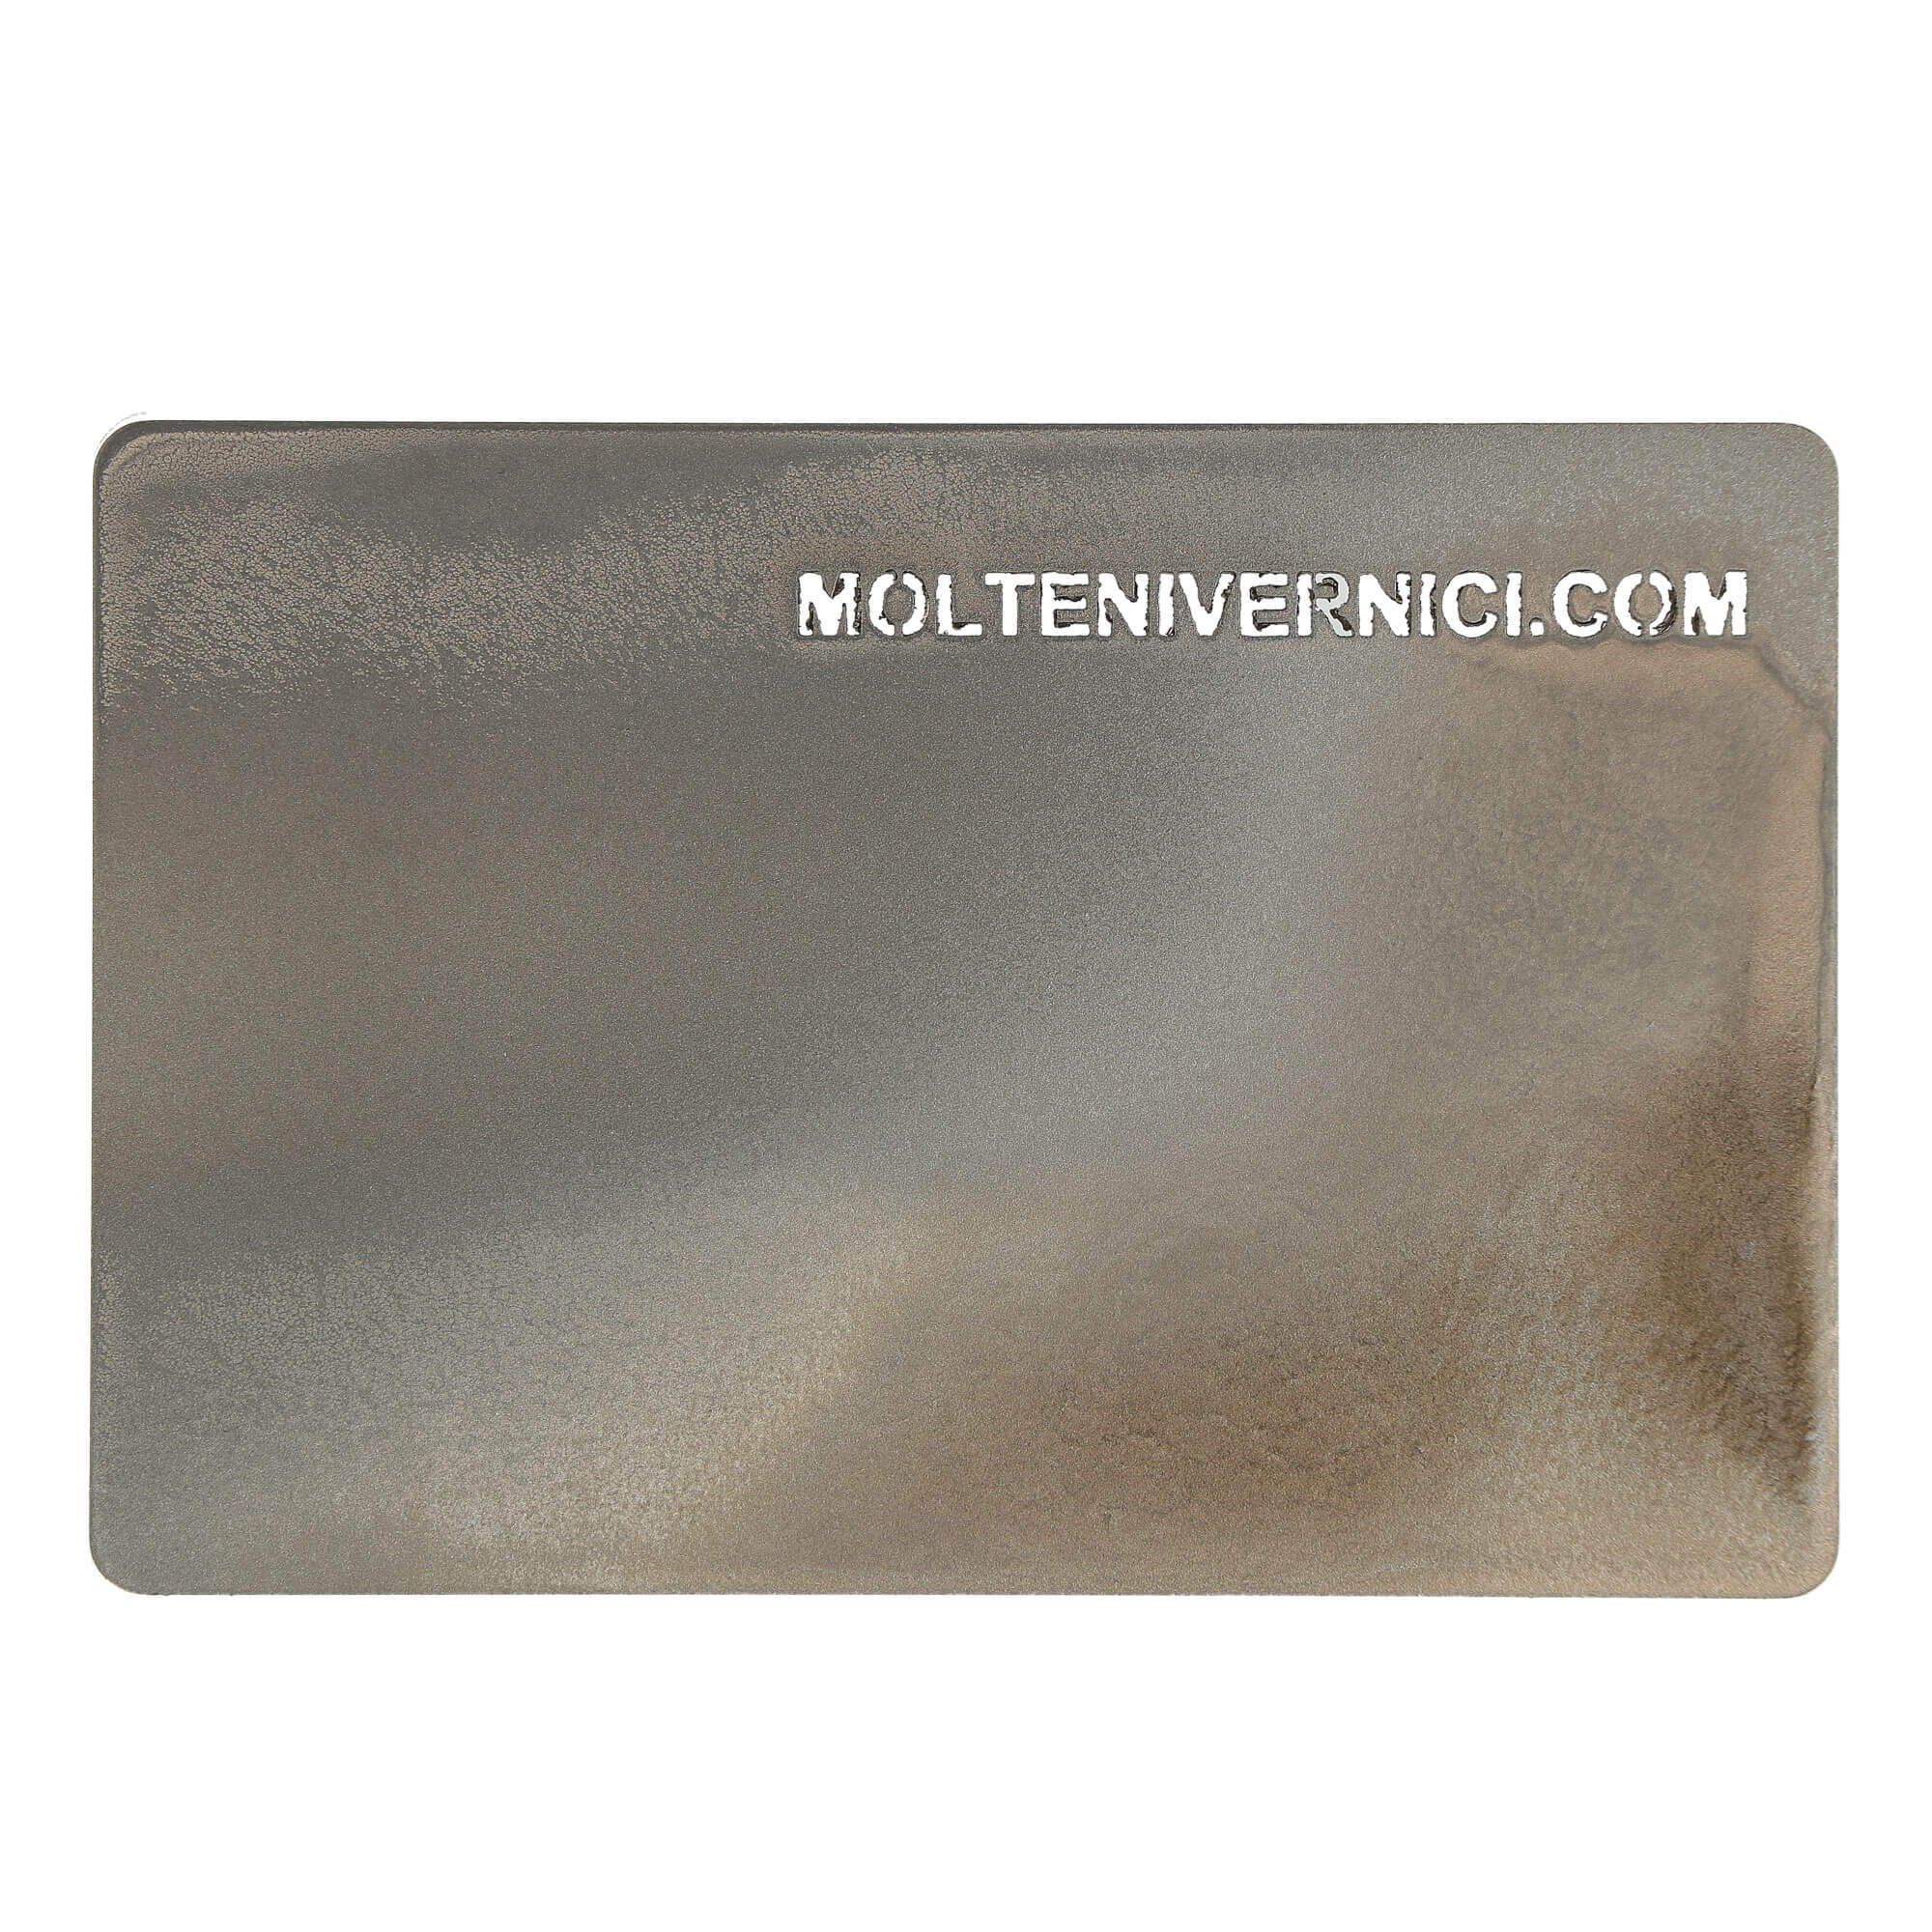 Materico Bronzo Due Oxidised Effect Varnish - 2k two-component varnish able to give every support (prepared with specific primers) made on iron, pickled iron, zinc iron, steel, stainless steel, zama, brass, bronze, aluminum, aluminum alloys, silver, galvanised metals, ABS, polycarbonate, polyurethane, charged nylon, plexiglass, complex plastic polymers, fiberglass, MDF and wood, composite materials, stones, the aspect of the natural metal oxidations.